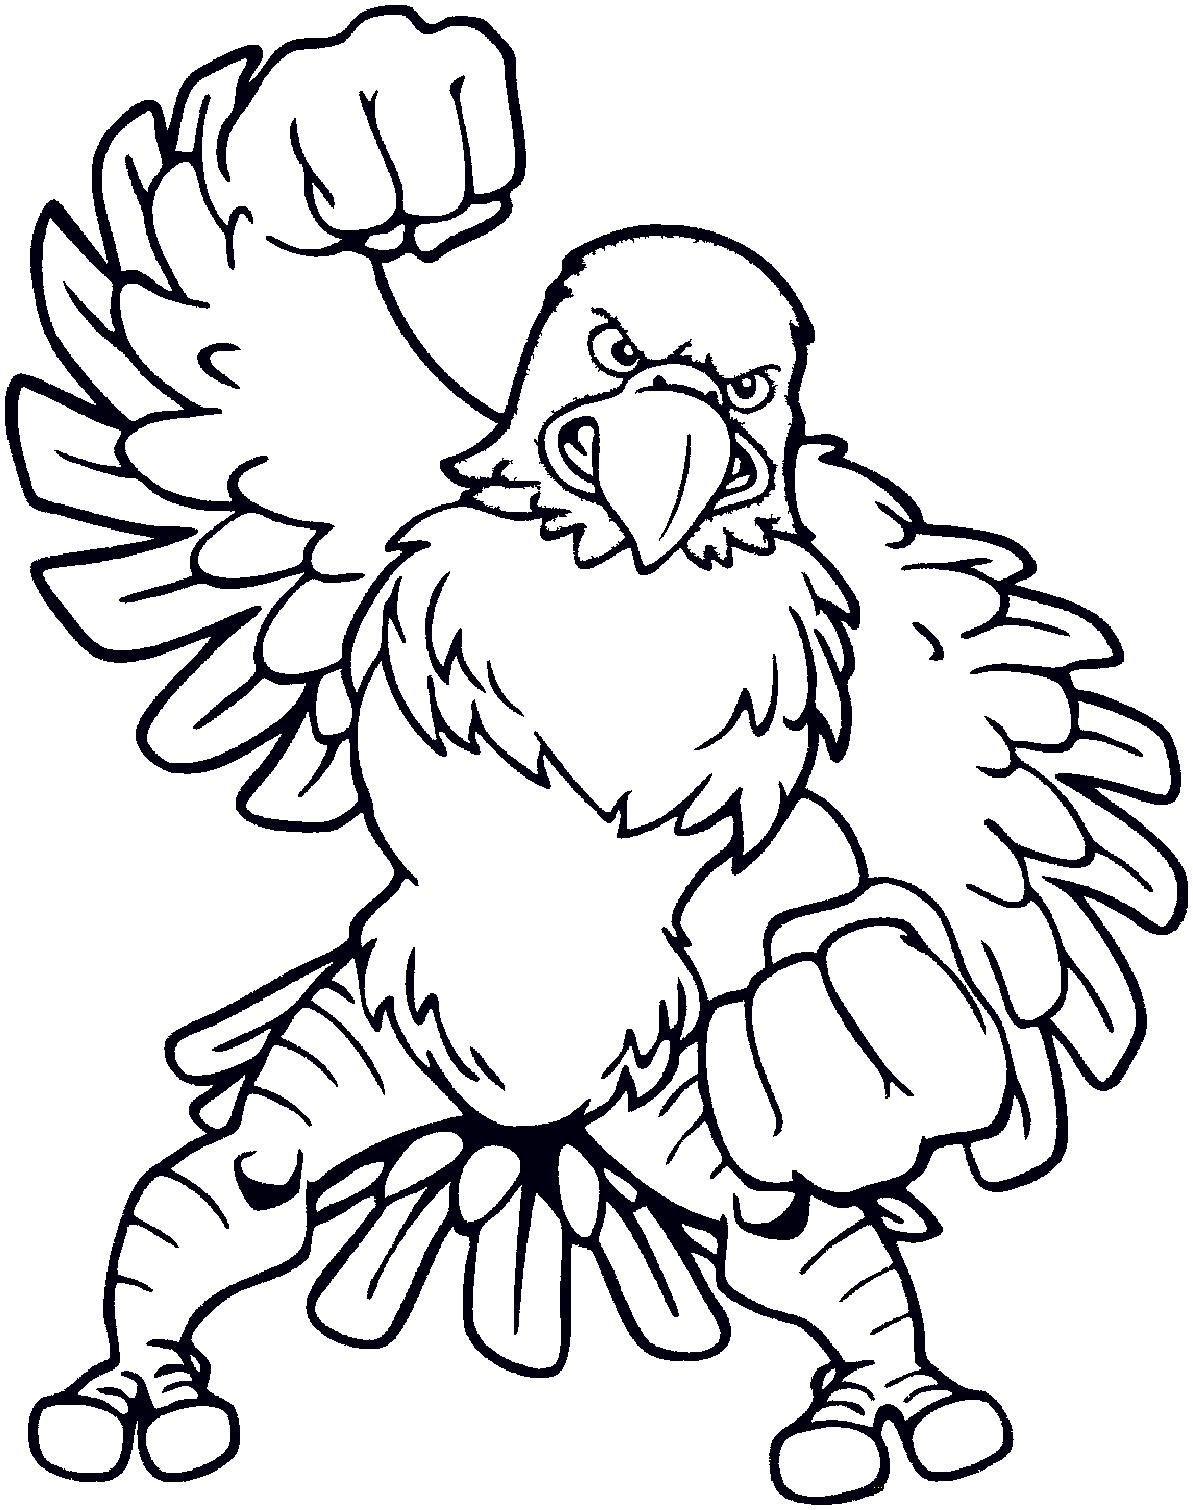 coloring pages of eagles - photo#2